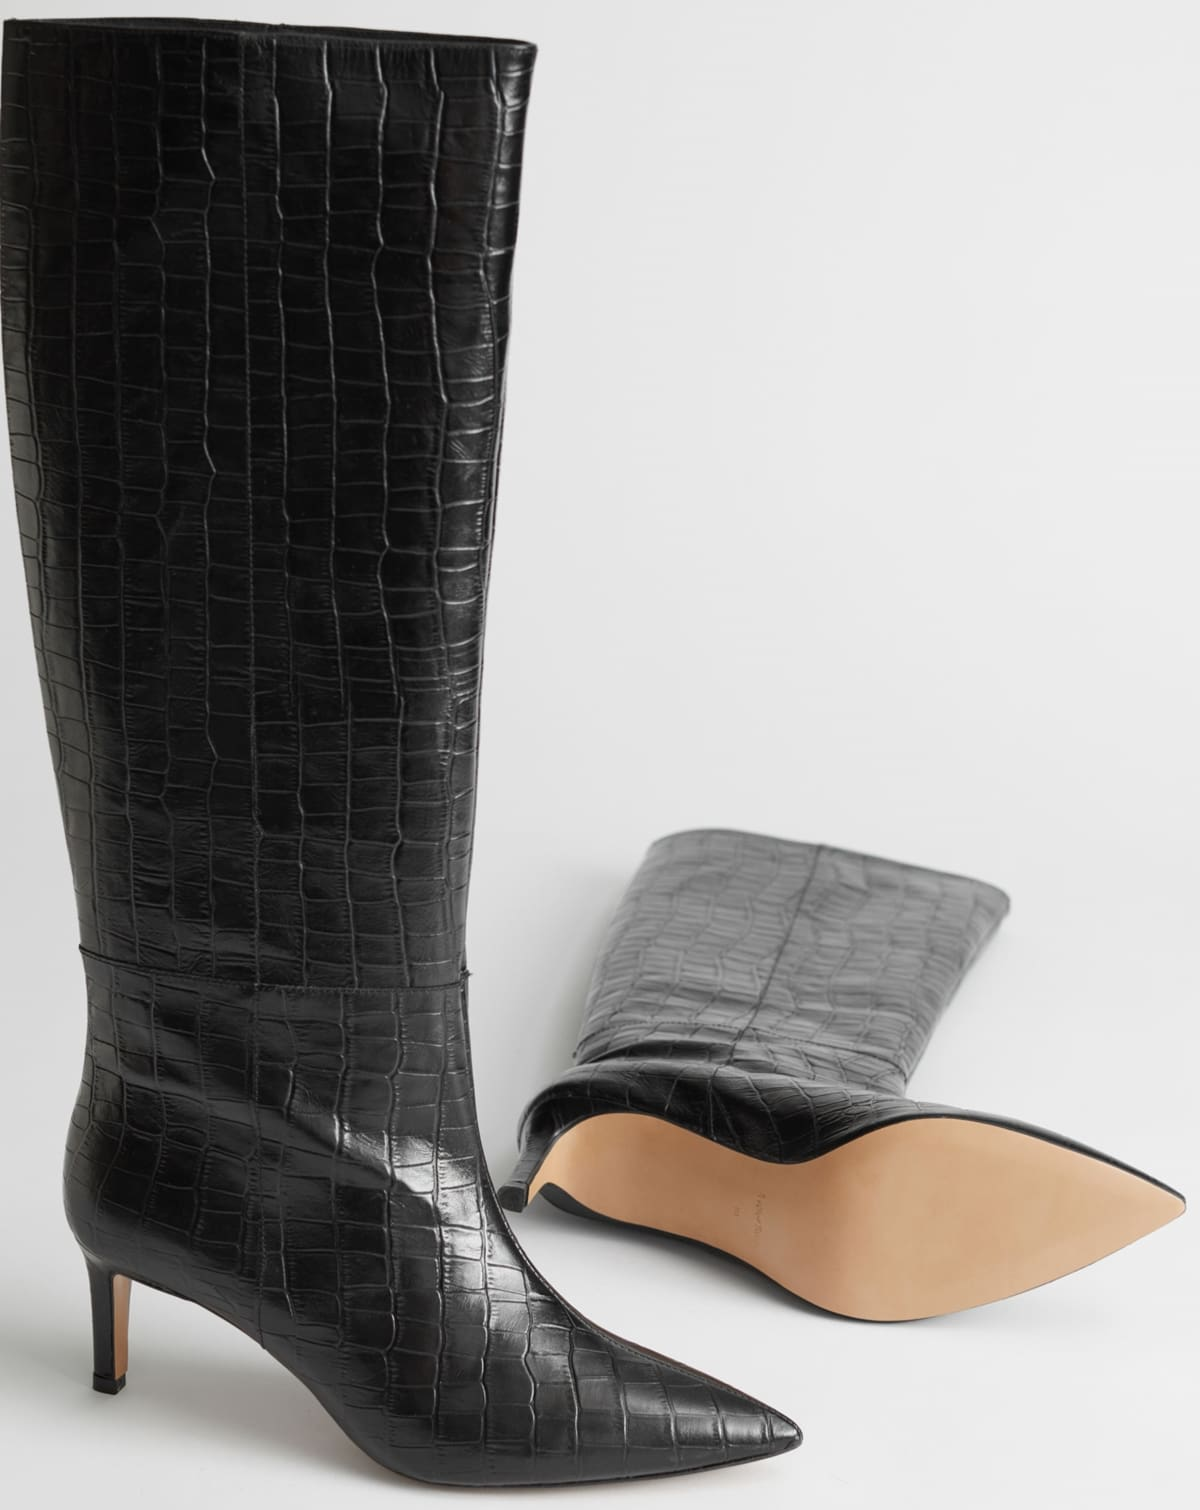 Croc embossed leather boots with slim, '90s-inspired stiletto heels and a pointed silhouette